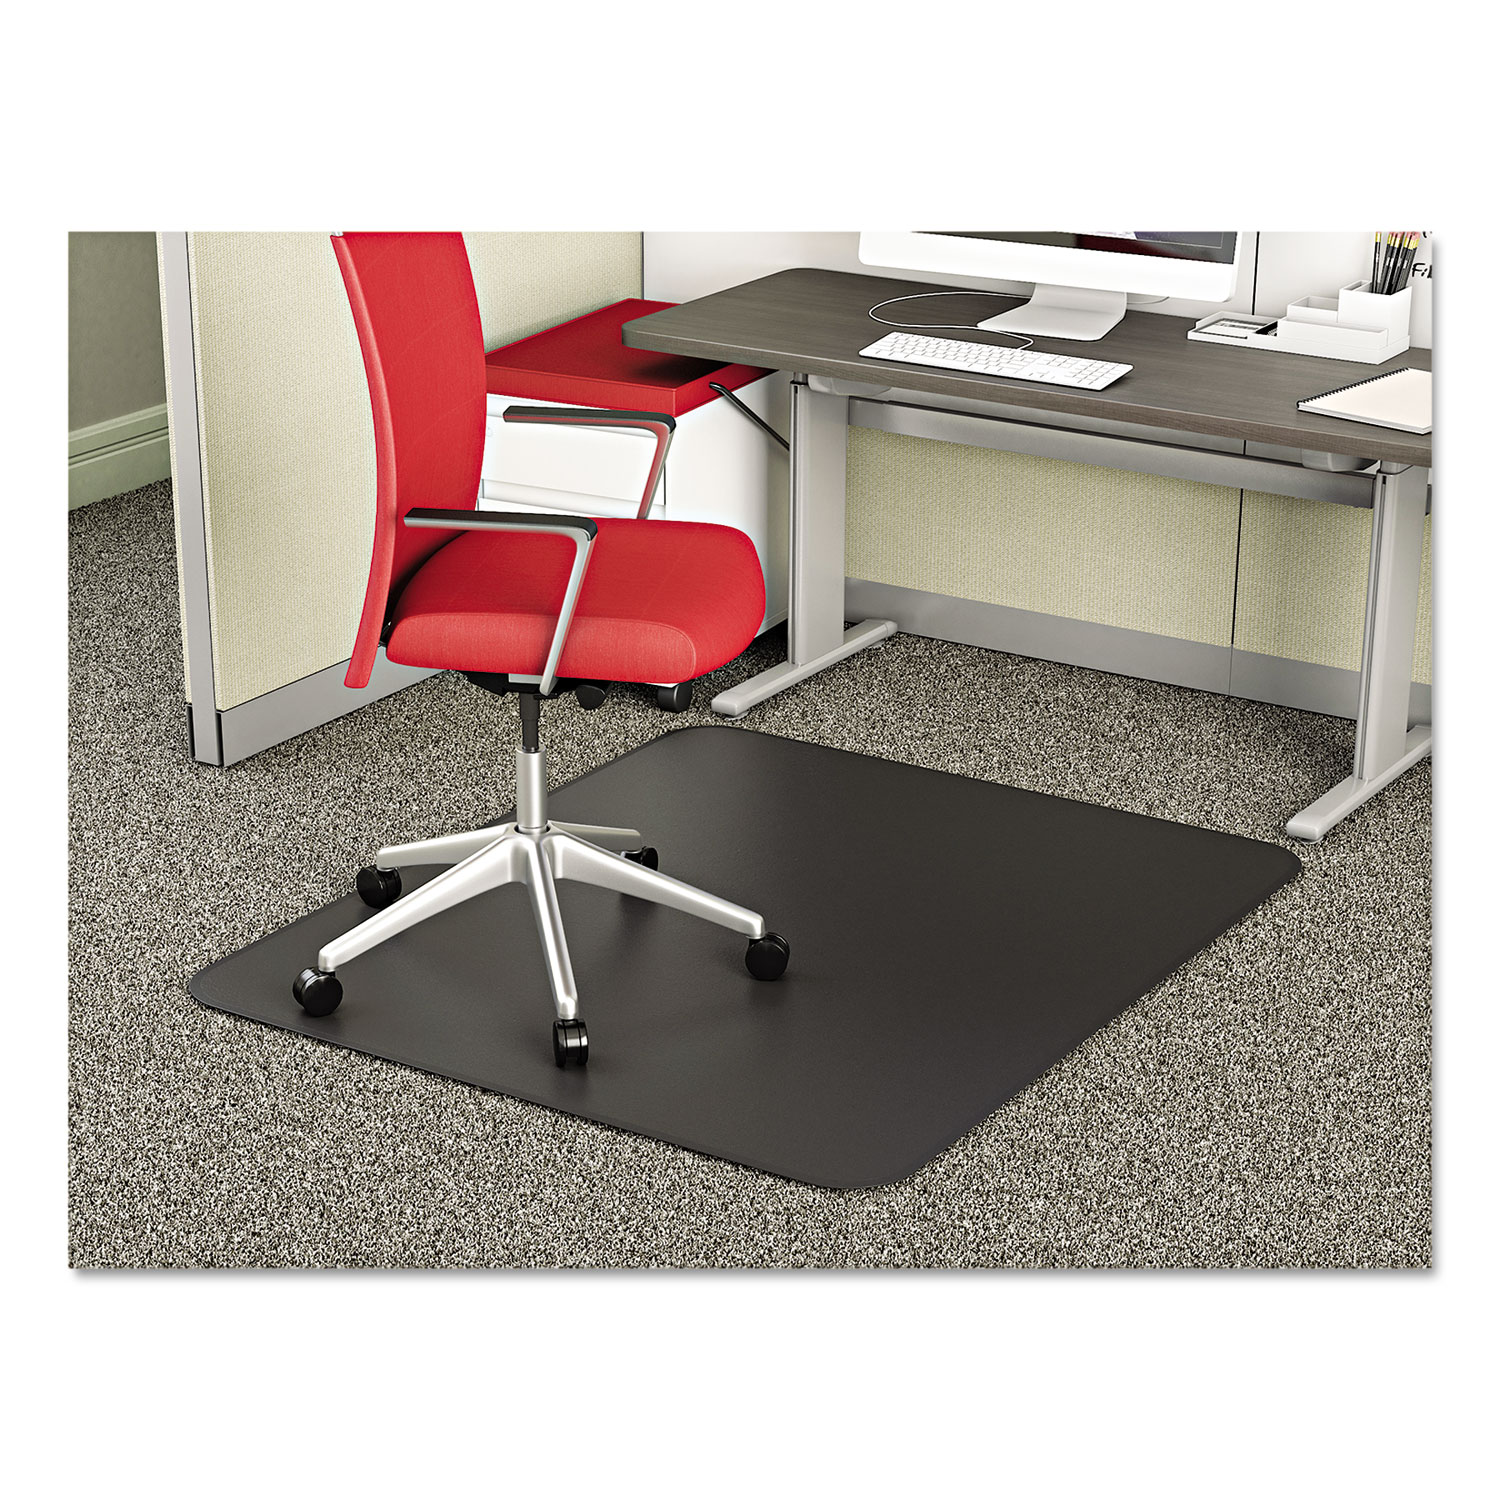 Supermat Frequent Use Chair Mat For Medium Pile Carpet 36 X 48